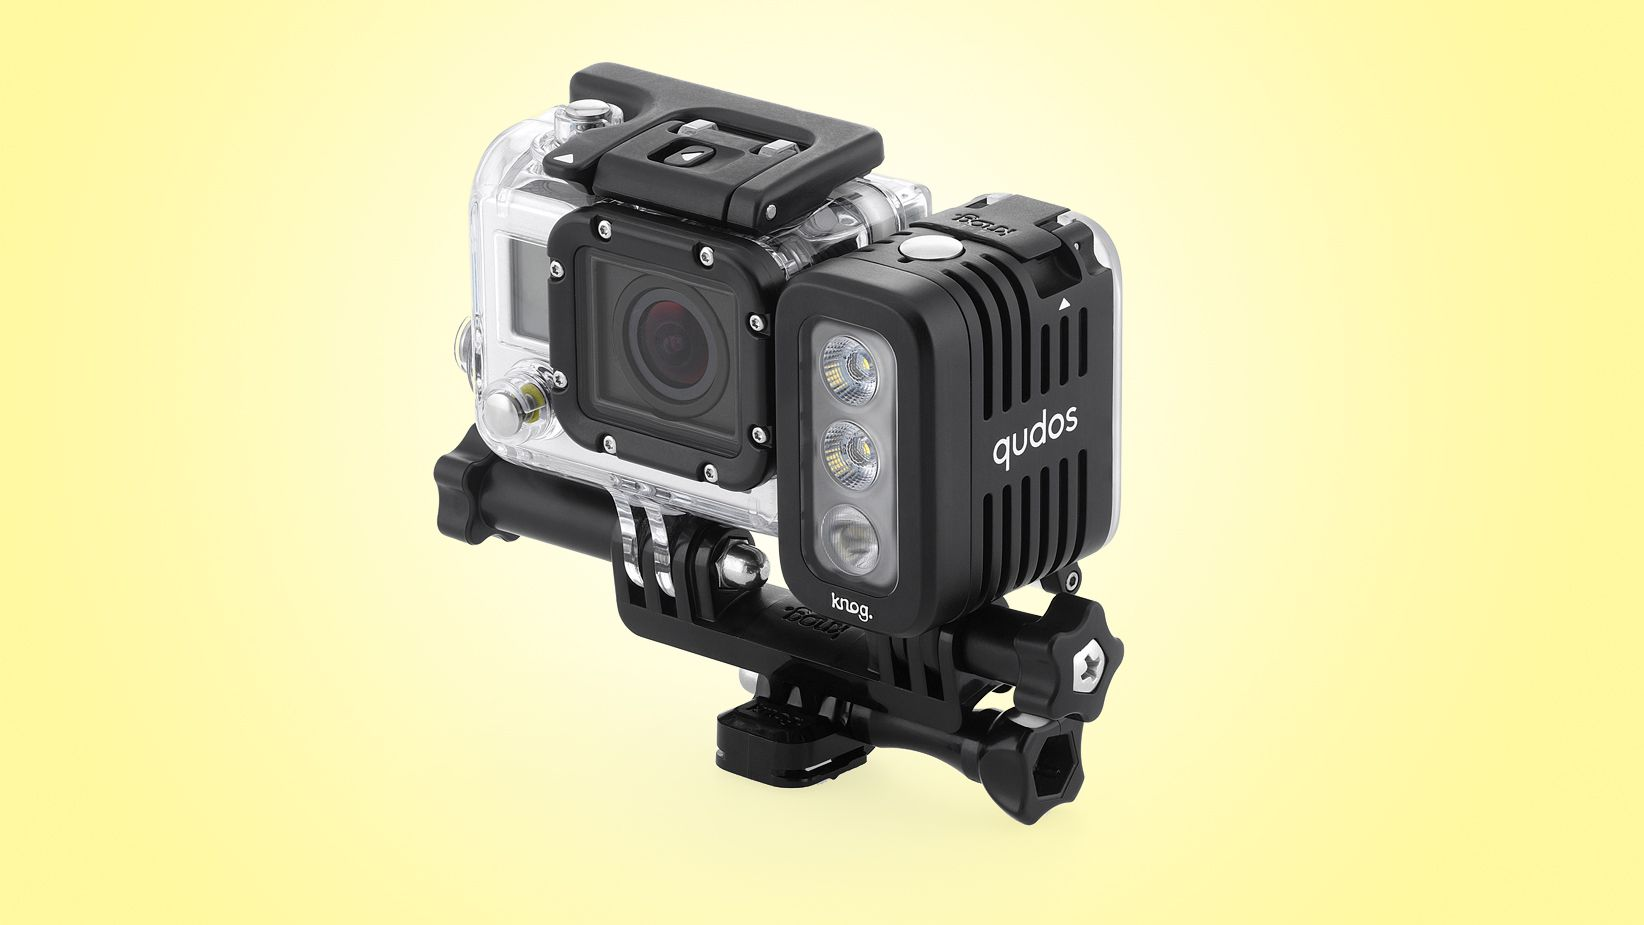 a0c59d8f8fa9b6 Best GoPro camera 2019: ultimate action cams and the best GoPro ...